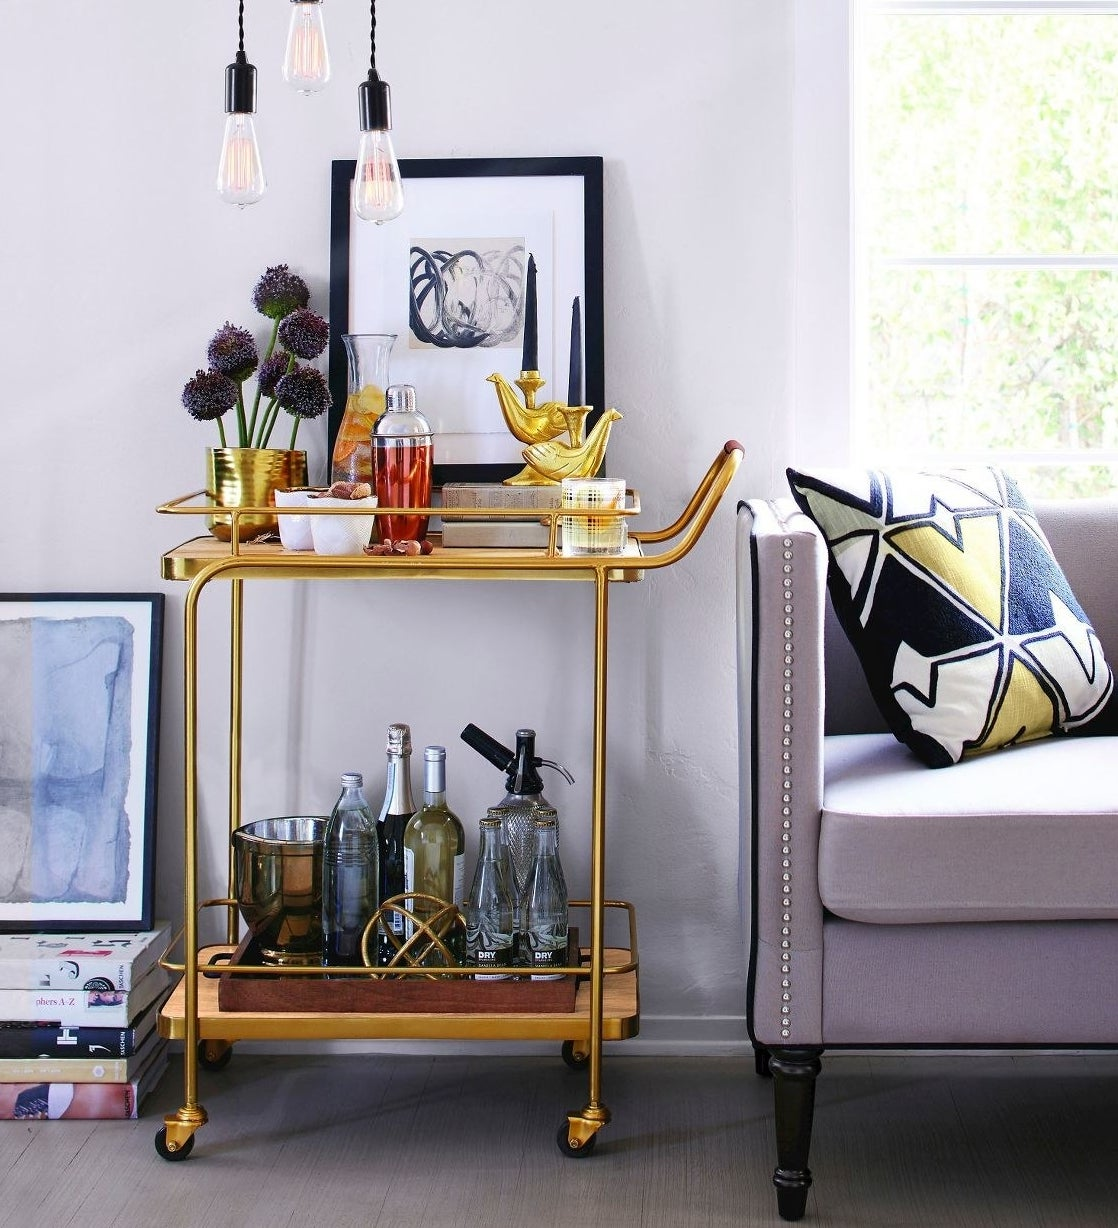 Gold bar cart with bottles and bar supplies on it